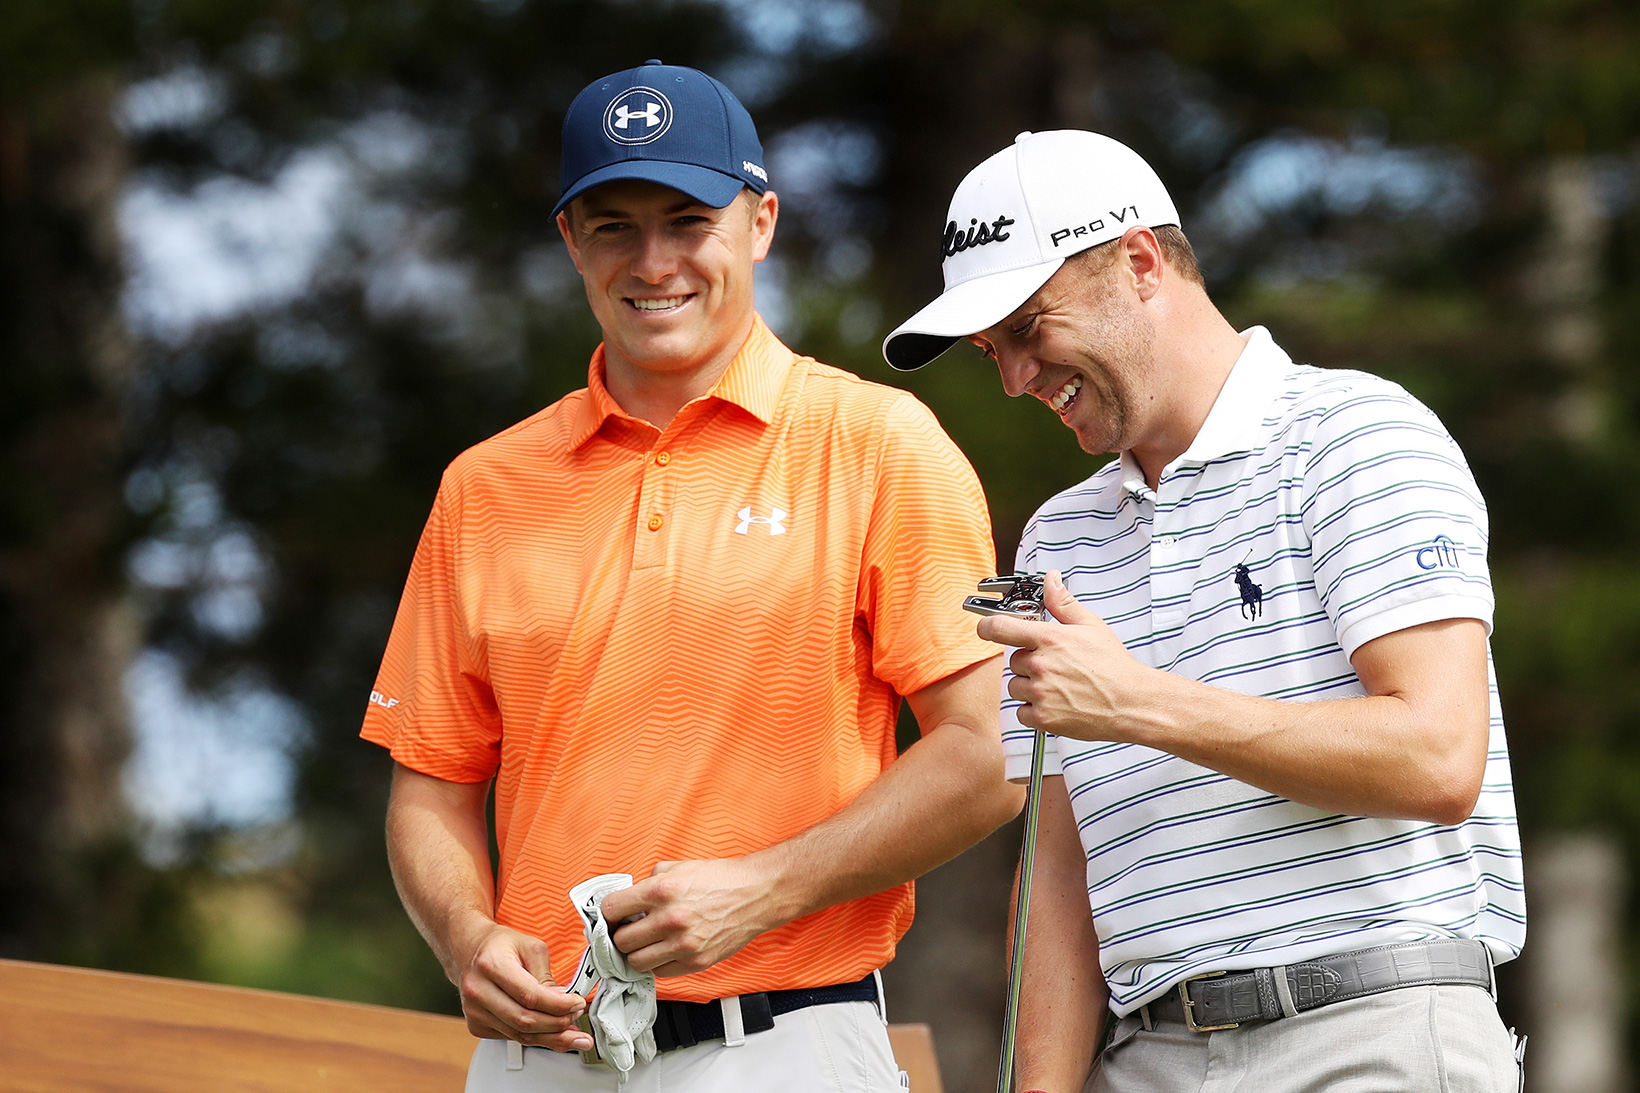 2018 Sentry Tournament of Champions: Round 1 - Jordan and Justin Thomas on No. 2